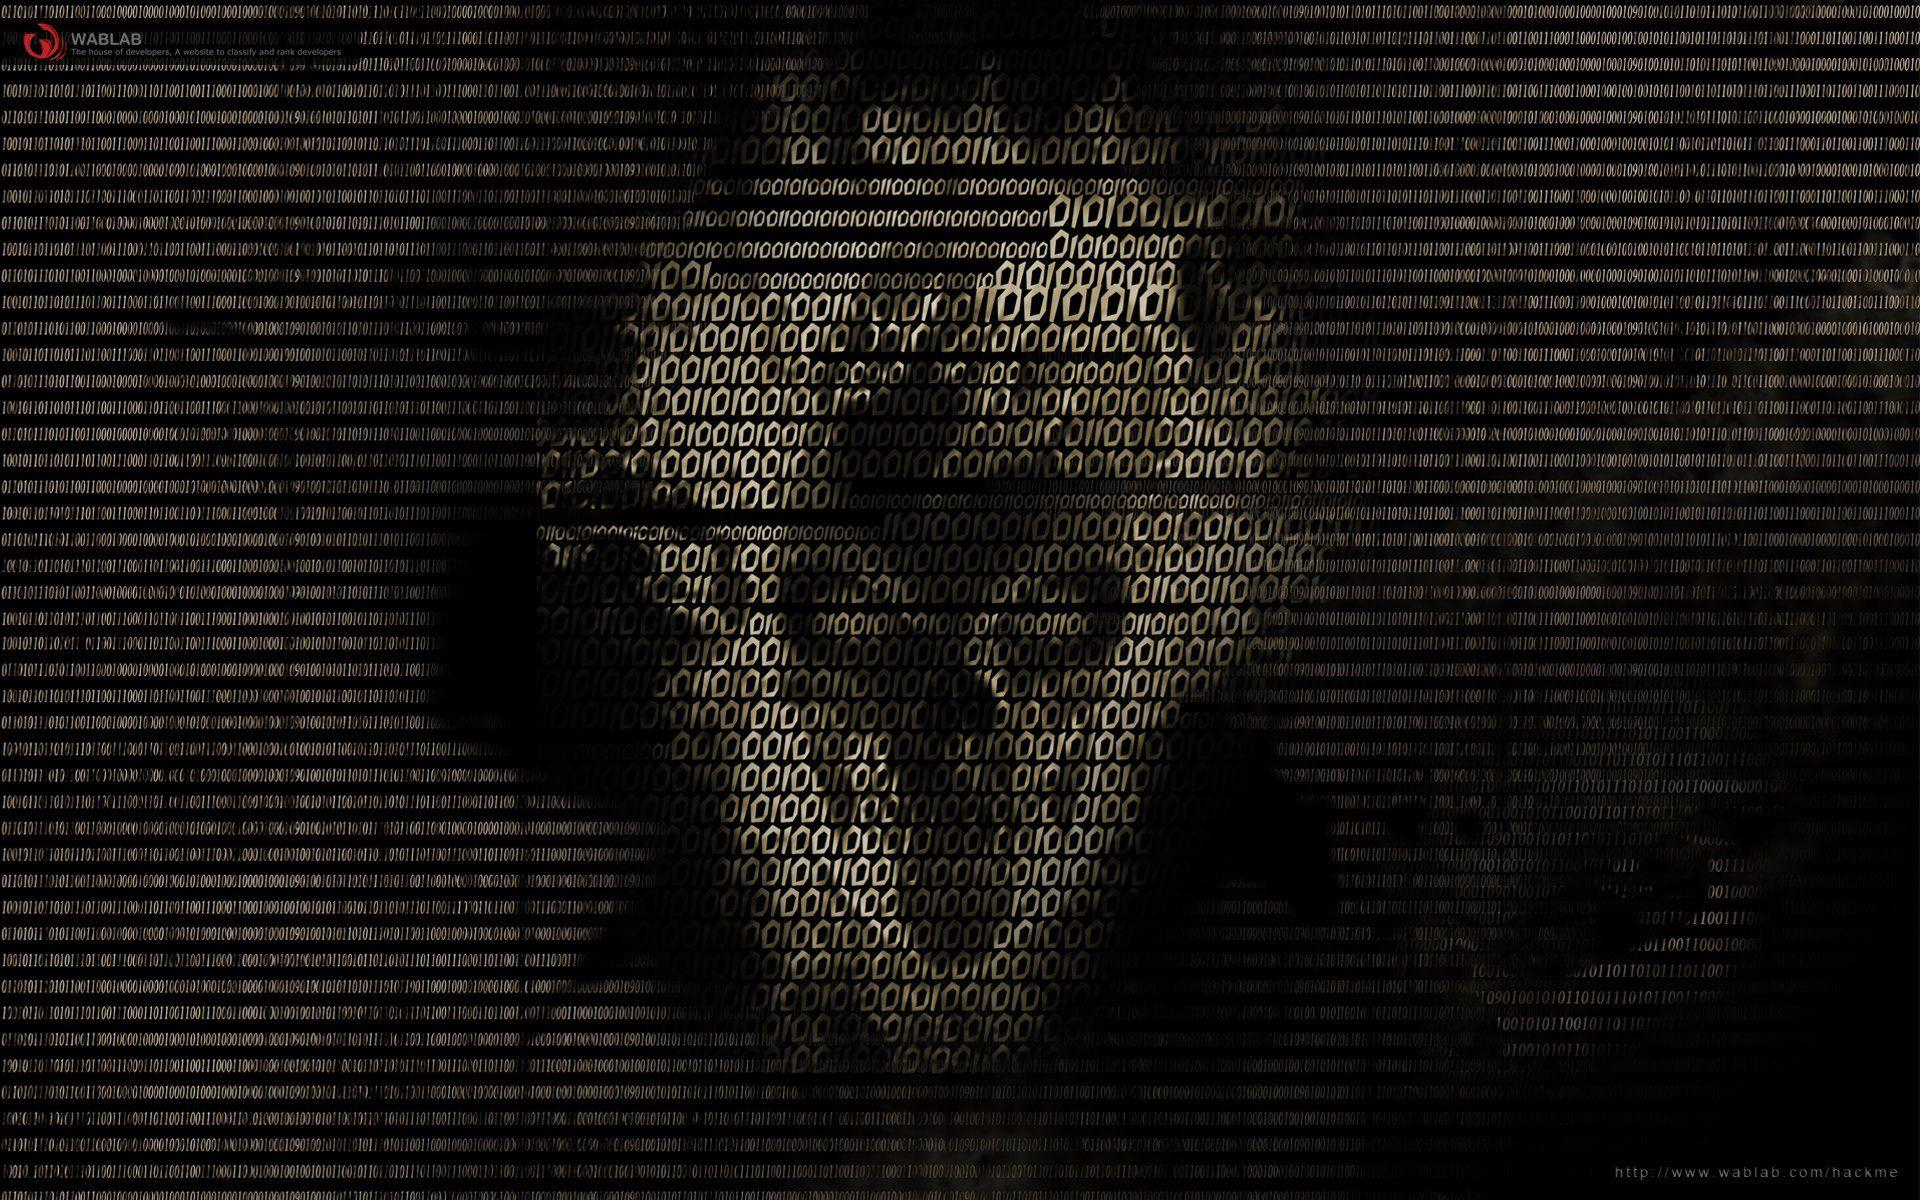 Hack Wallpapers Wallpaper Cave